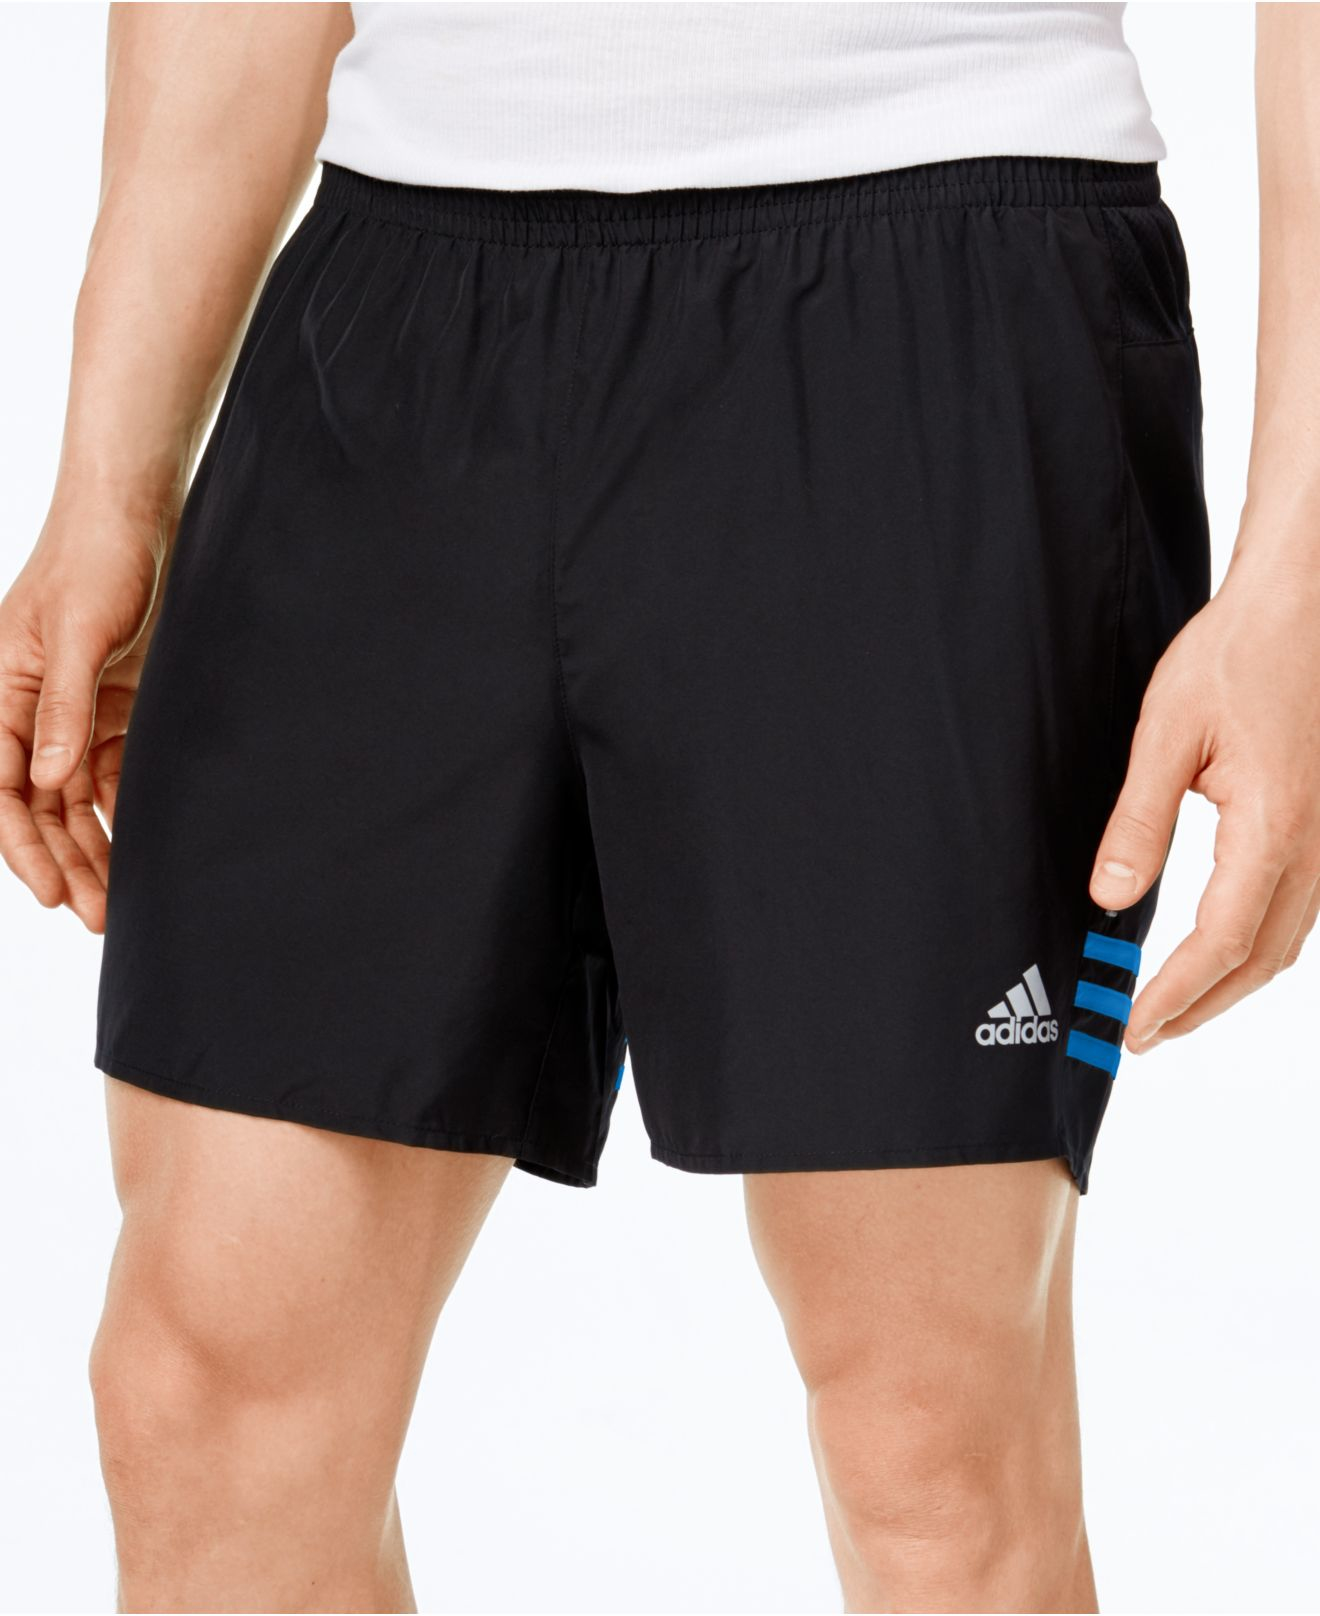 lyst adidas originals men 39 s climalite running shorts in. Black Bedroom Furniture Sets. Home Design Ideas